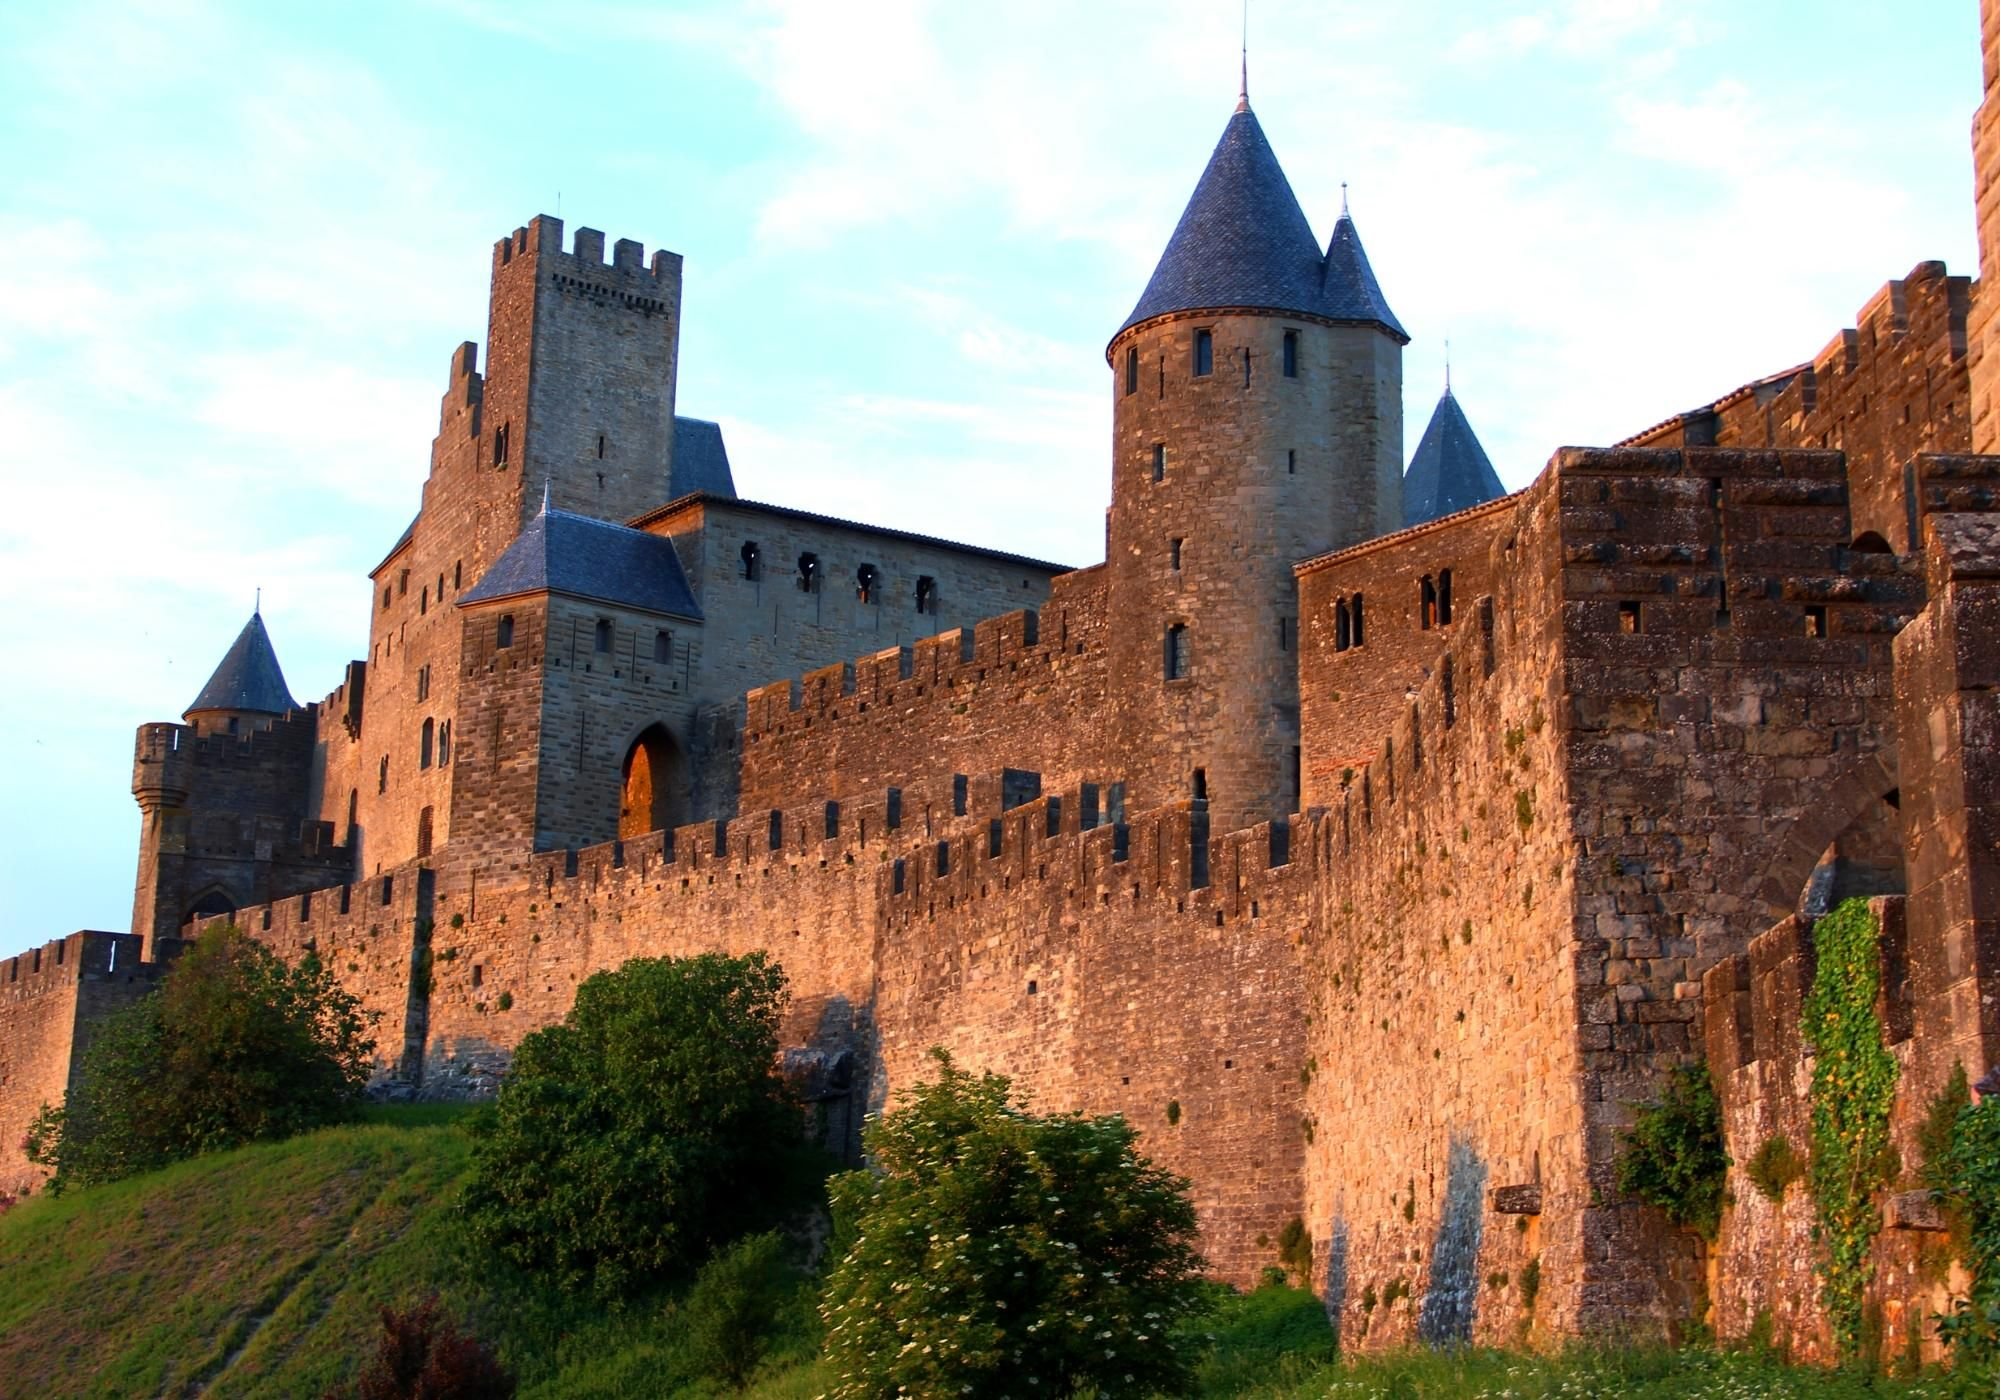 Carcassonne Tourism: TripAdvisor has 58,365 reviews of Carcassonne Hotels, Attractions, and Restaurants making it your best Carcassonne resource. #ohtheplacesillgo